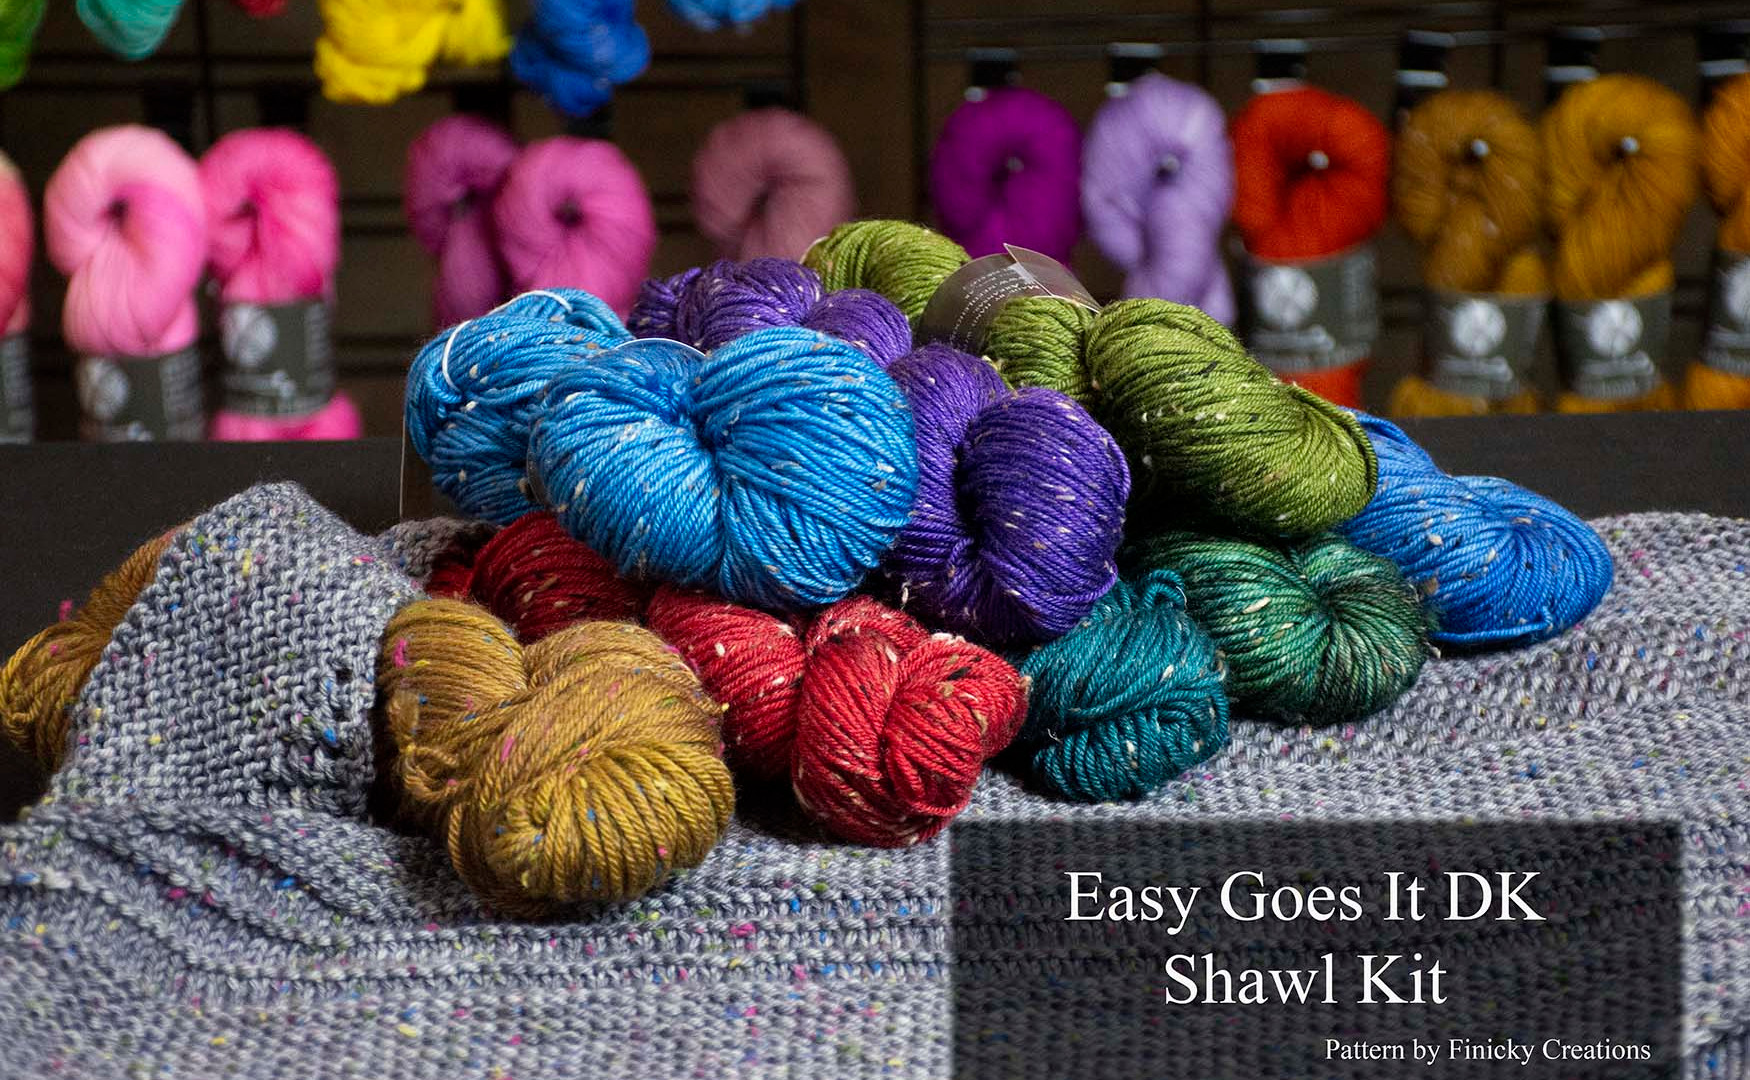 Easy Goes It DK Shawl Kit.jpg